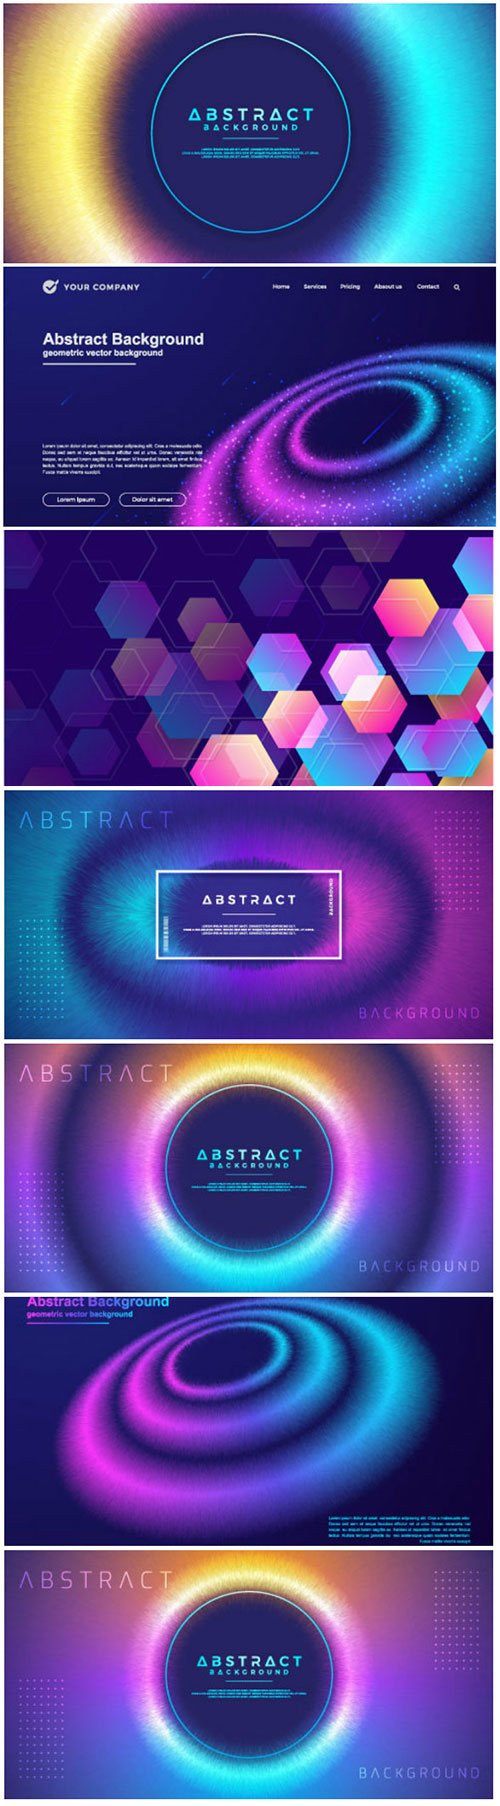 Abstract, dynamic, modern circle background